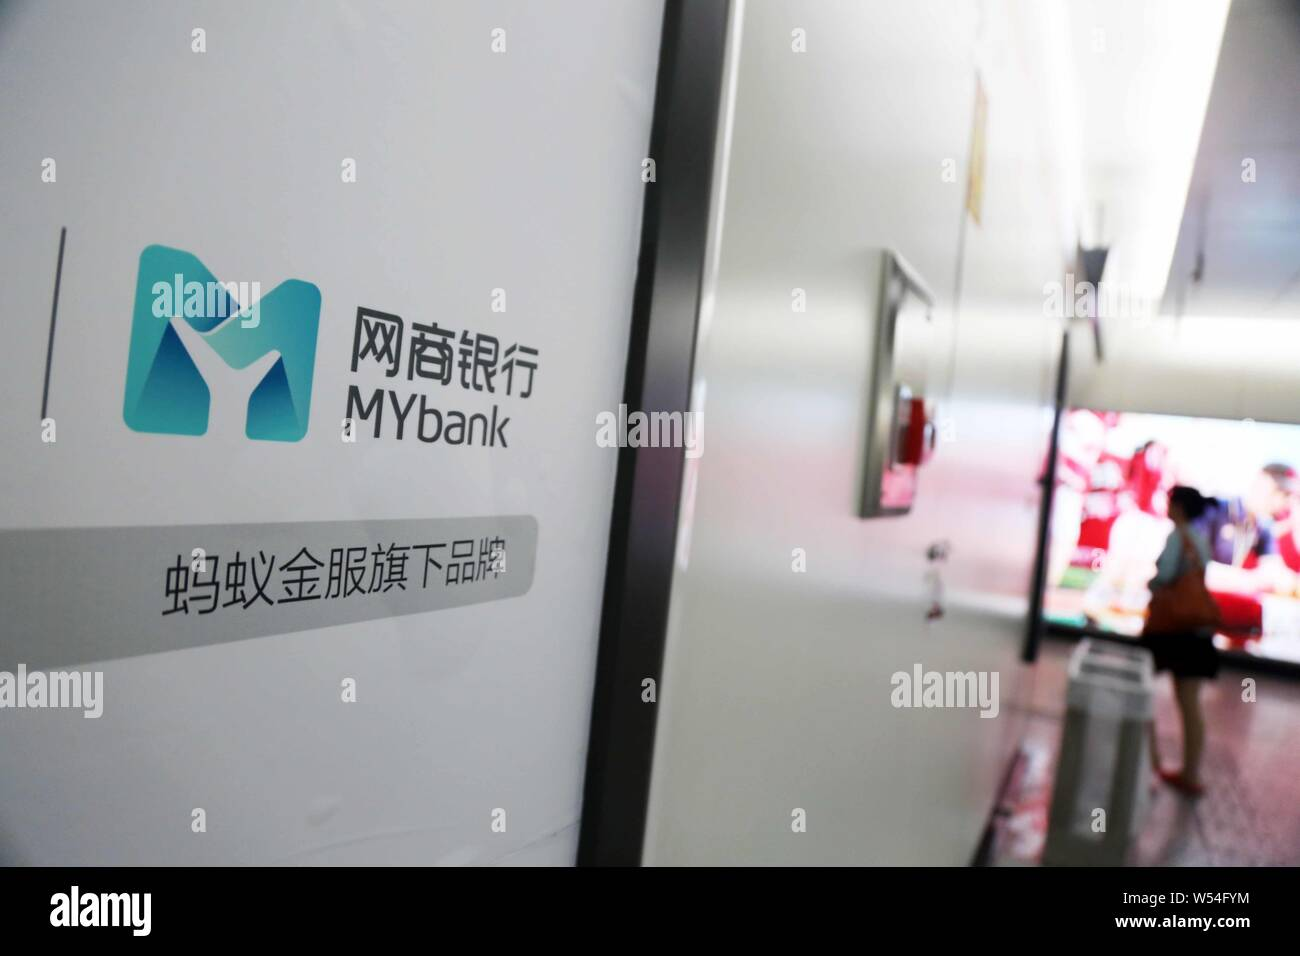 Ant Financial Services Stock Photos & Ant Financial Services